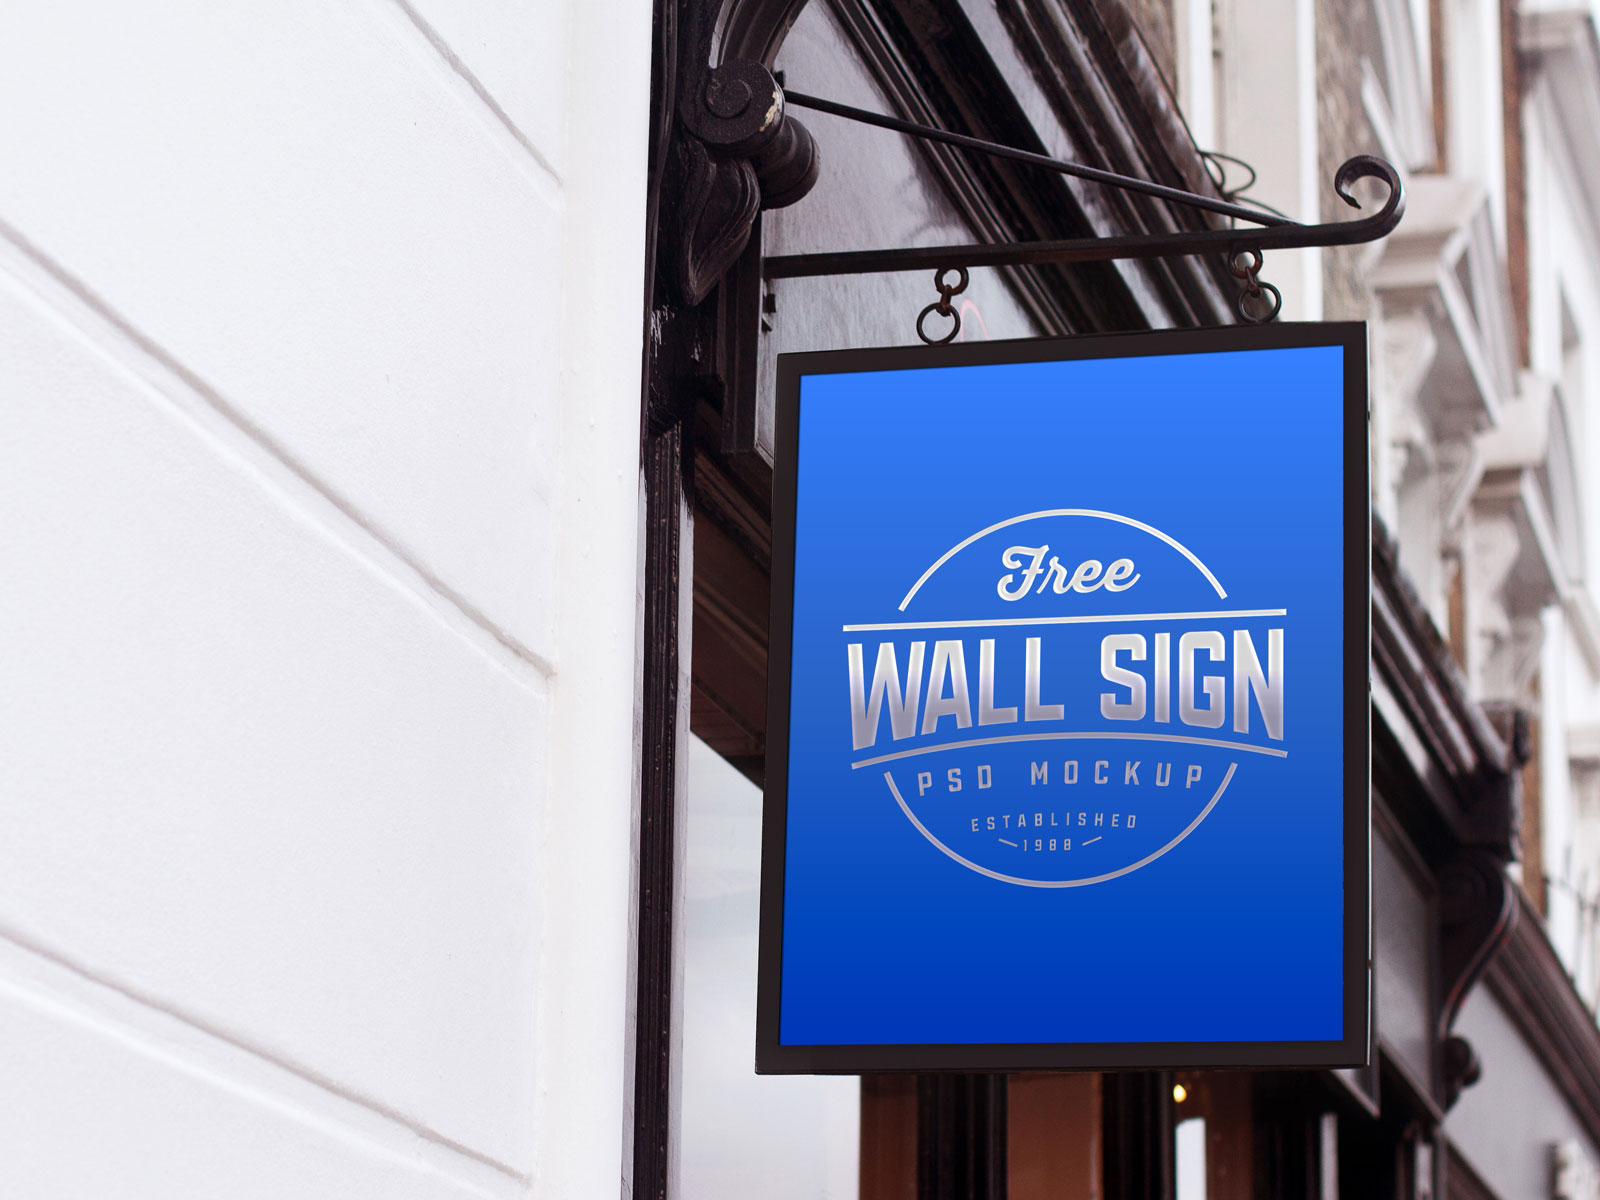 Free-Wall-Mounted-Classic-Sign-Mockup-PSD